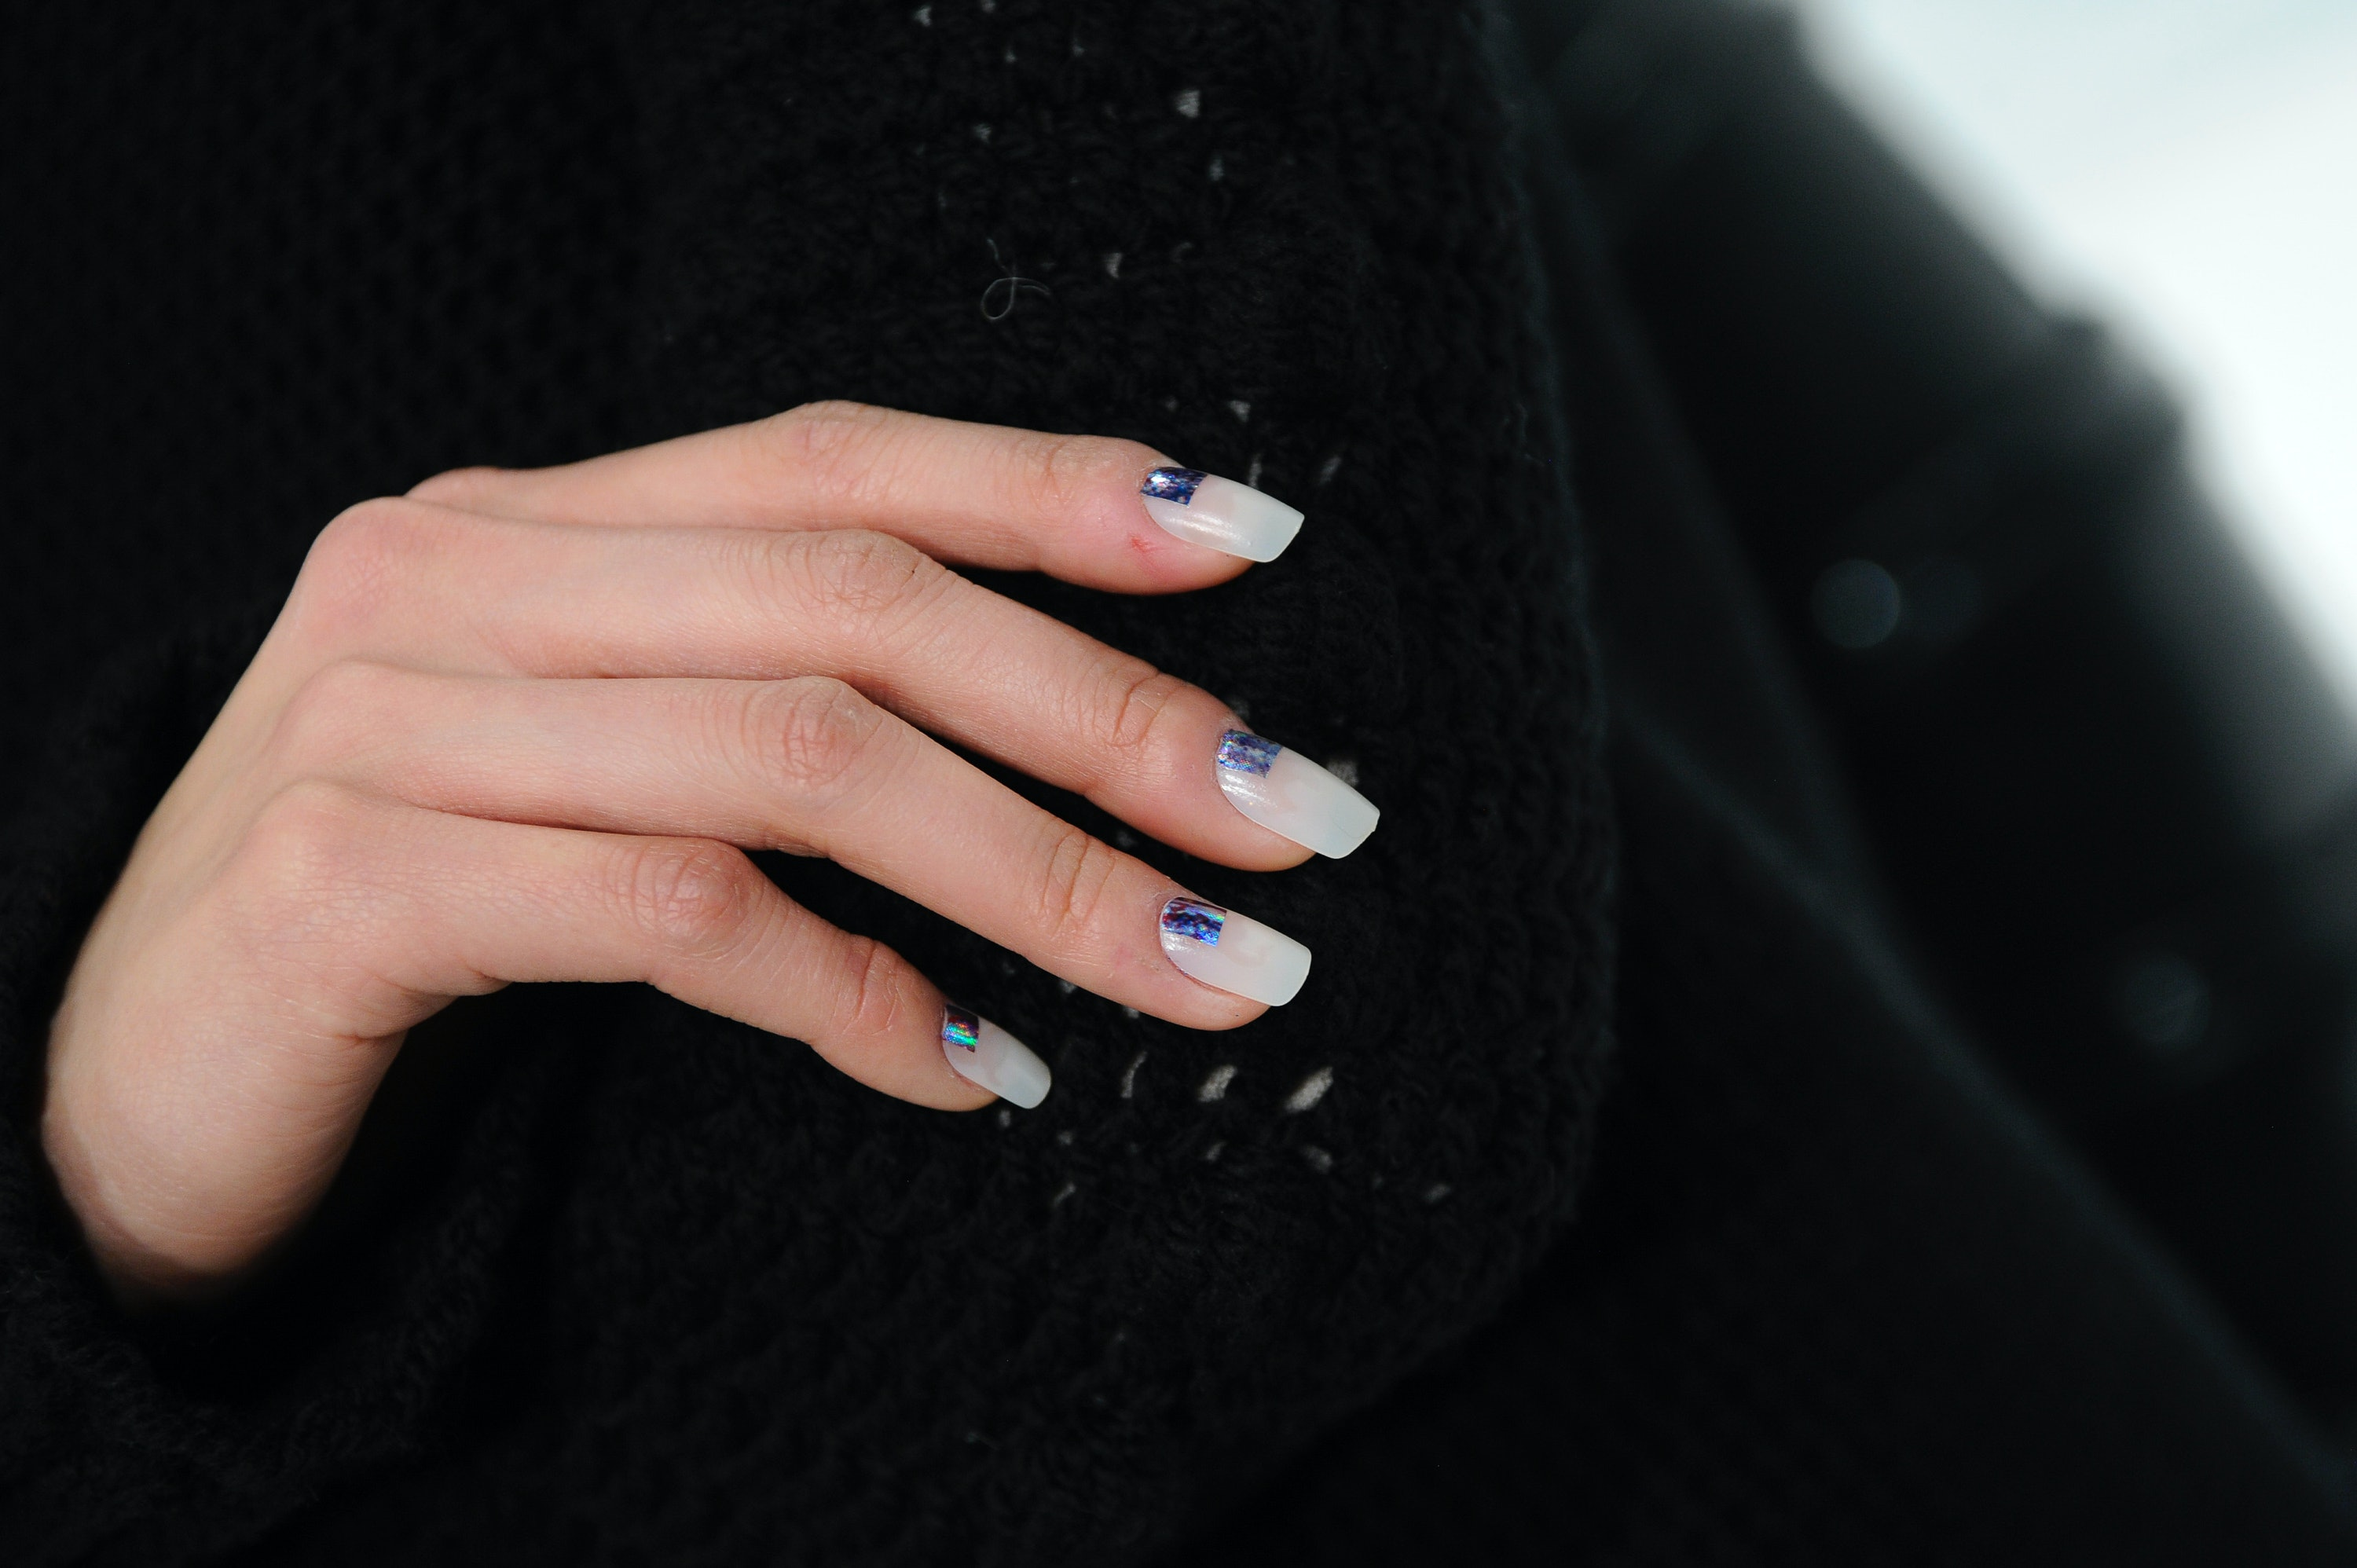 7 Nail Care Habits That Could Be Dangerous & What To Do Instead